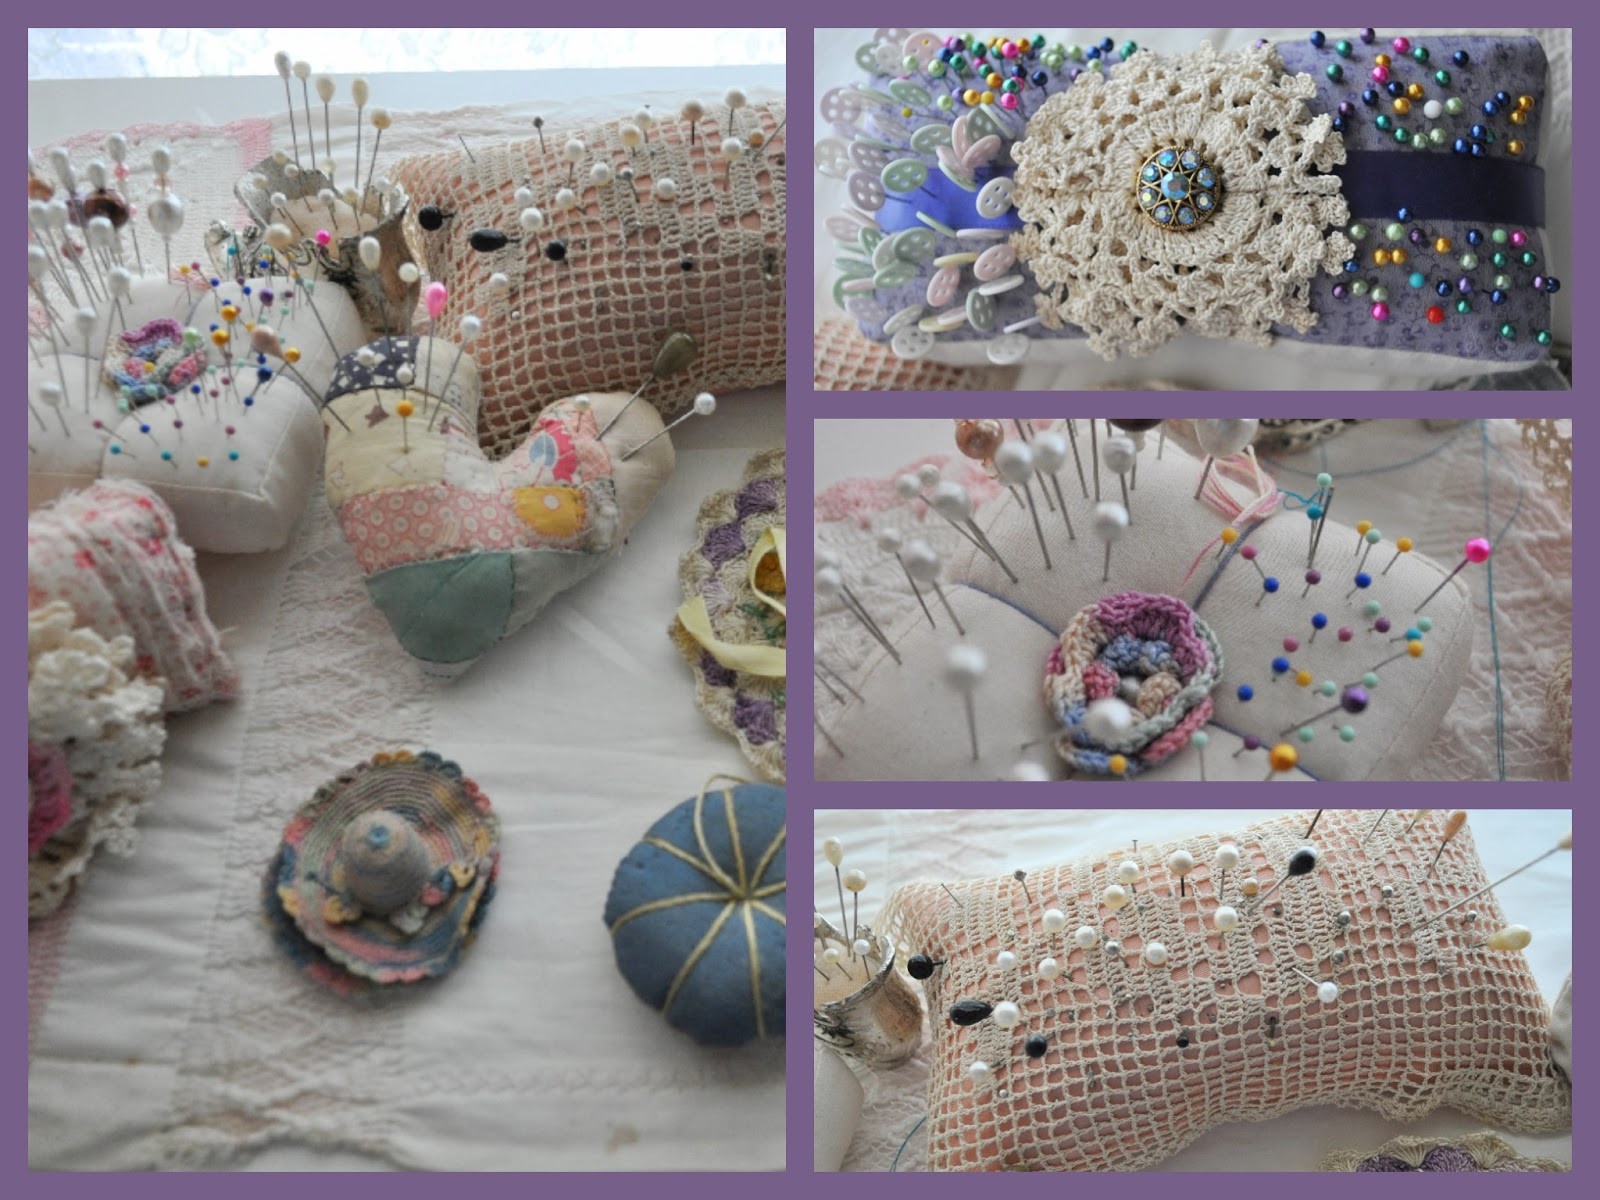 1000+ images about Shabby Chic Craft Room on Pinterest ...